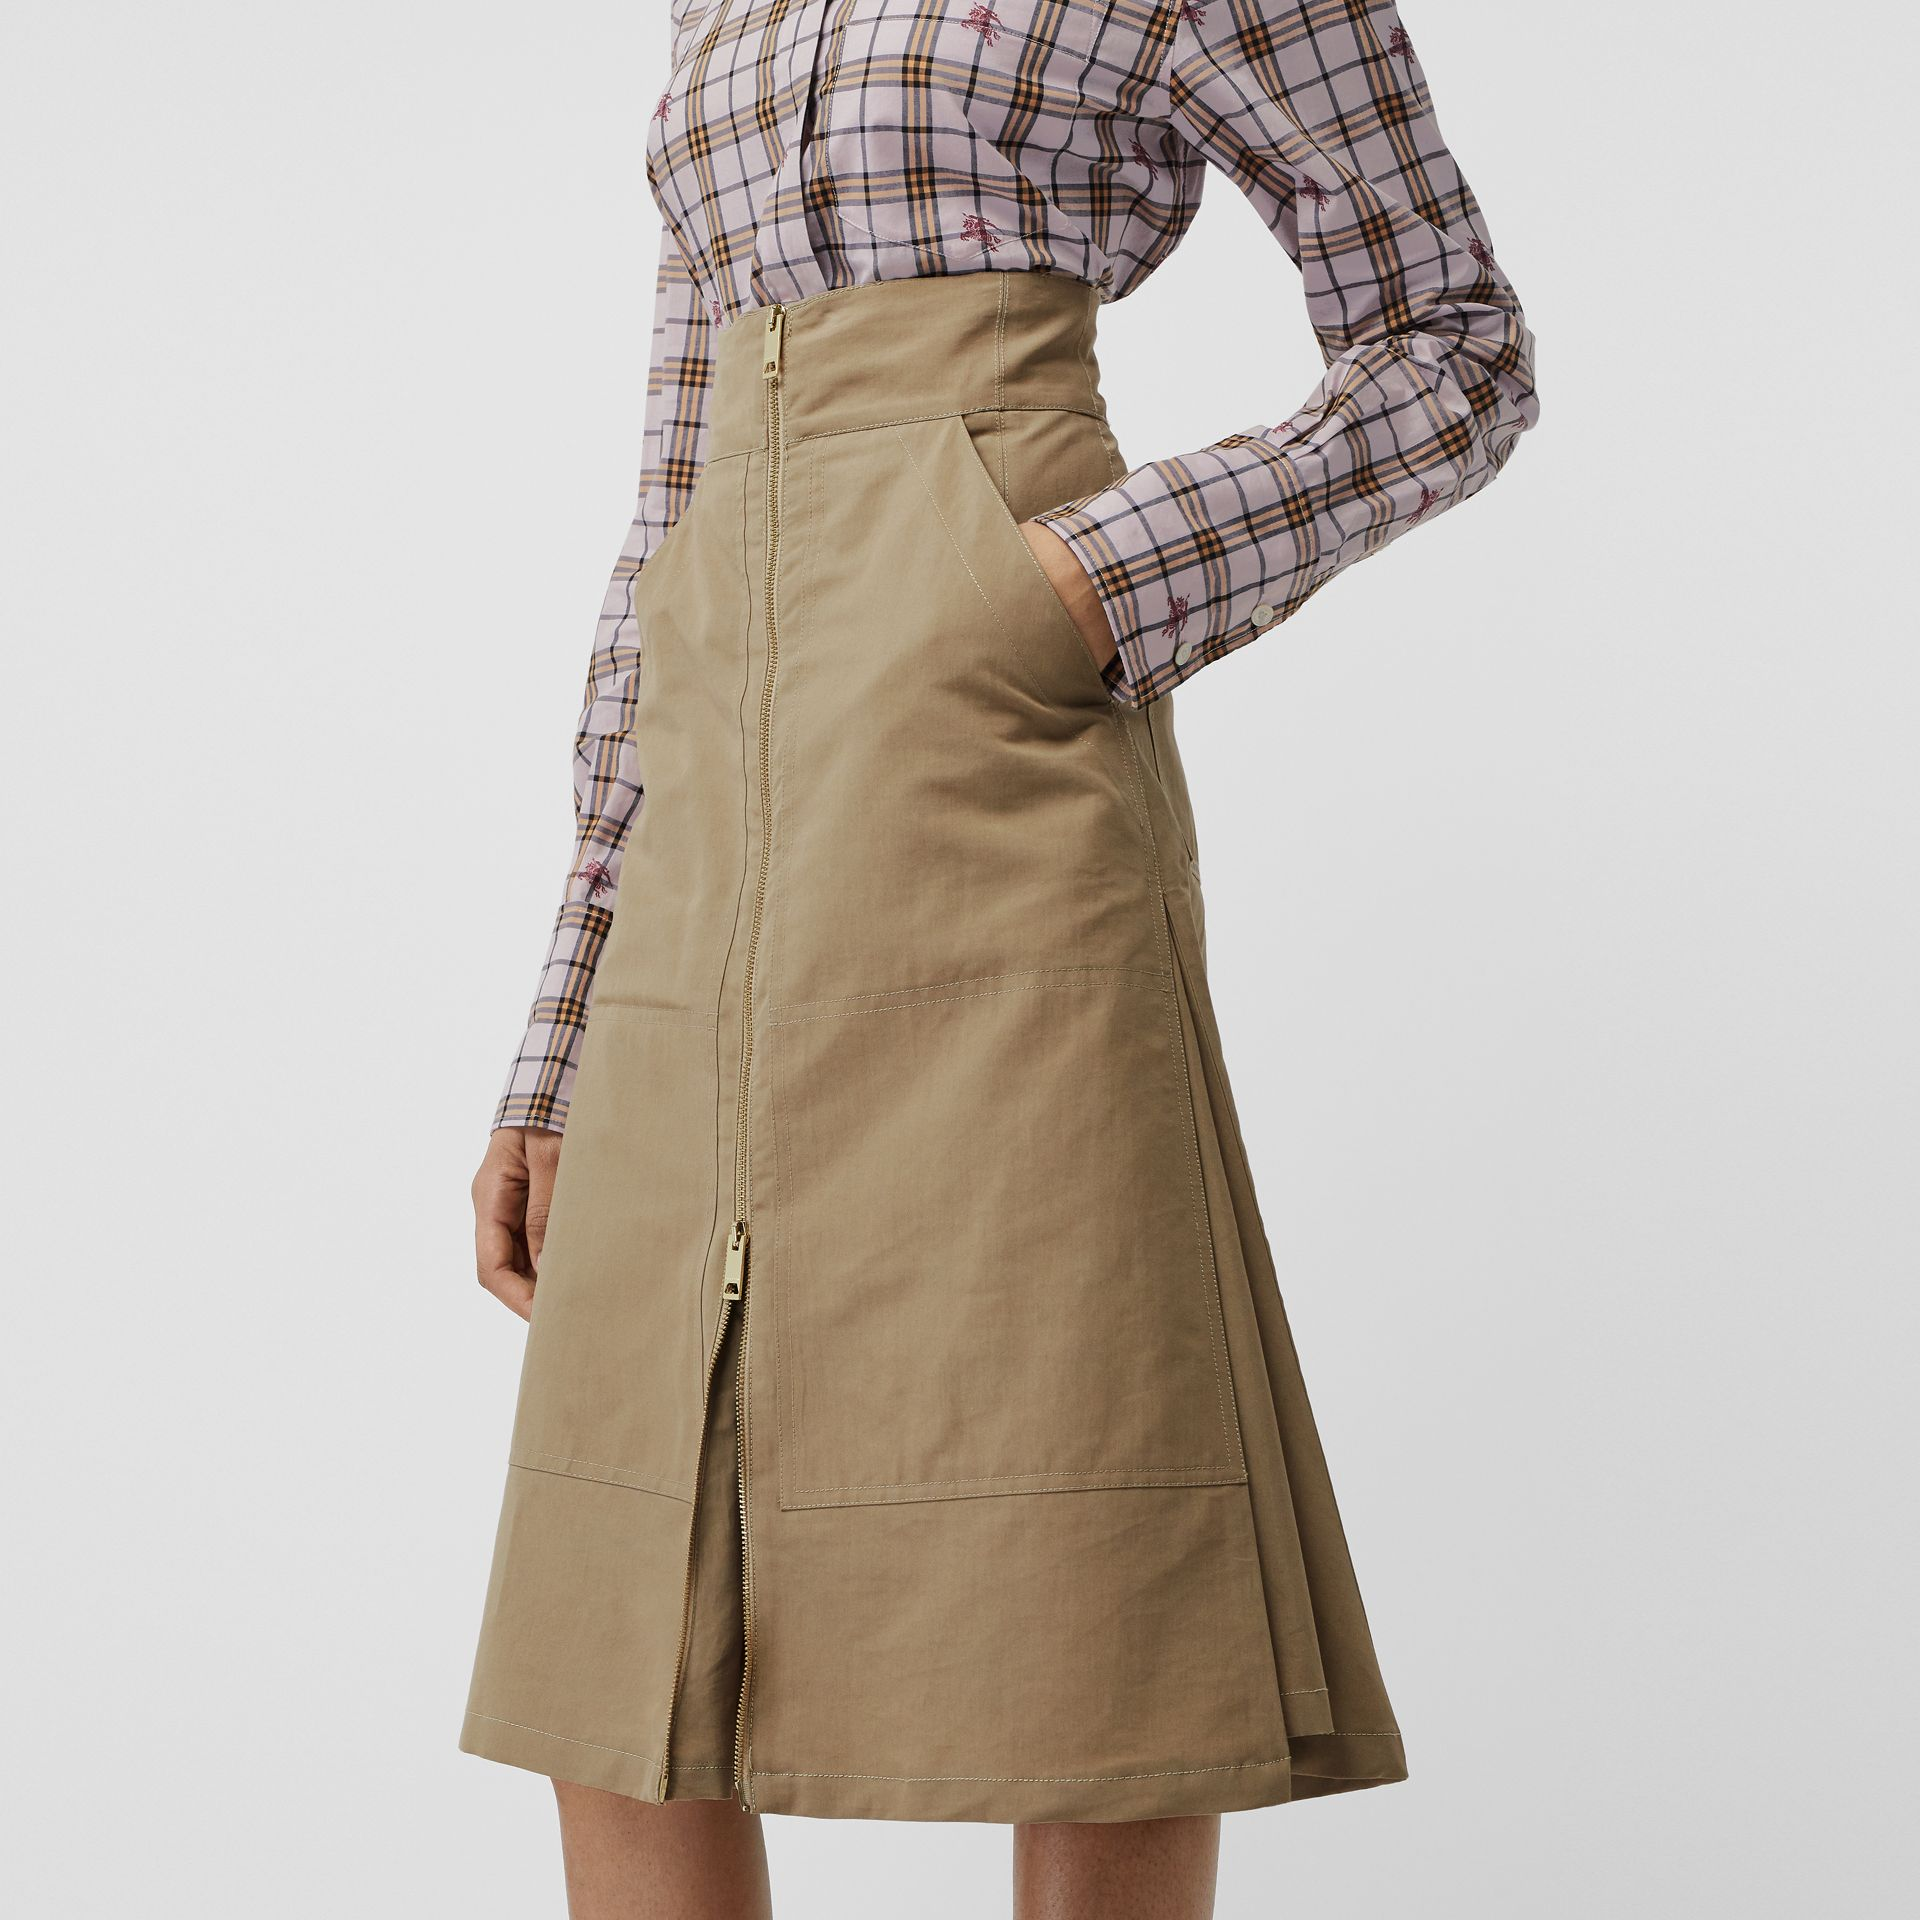 Cotton Silk High-waisted Skirt in Beige - Women | Burberry - gallery image 3